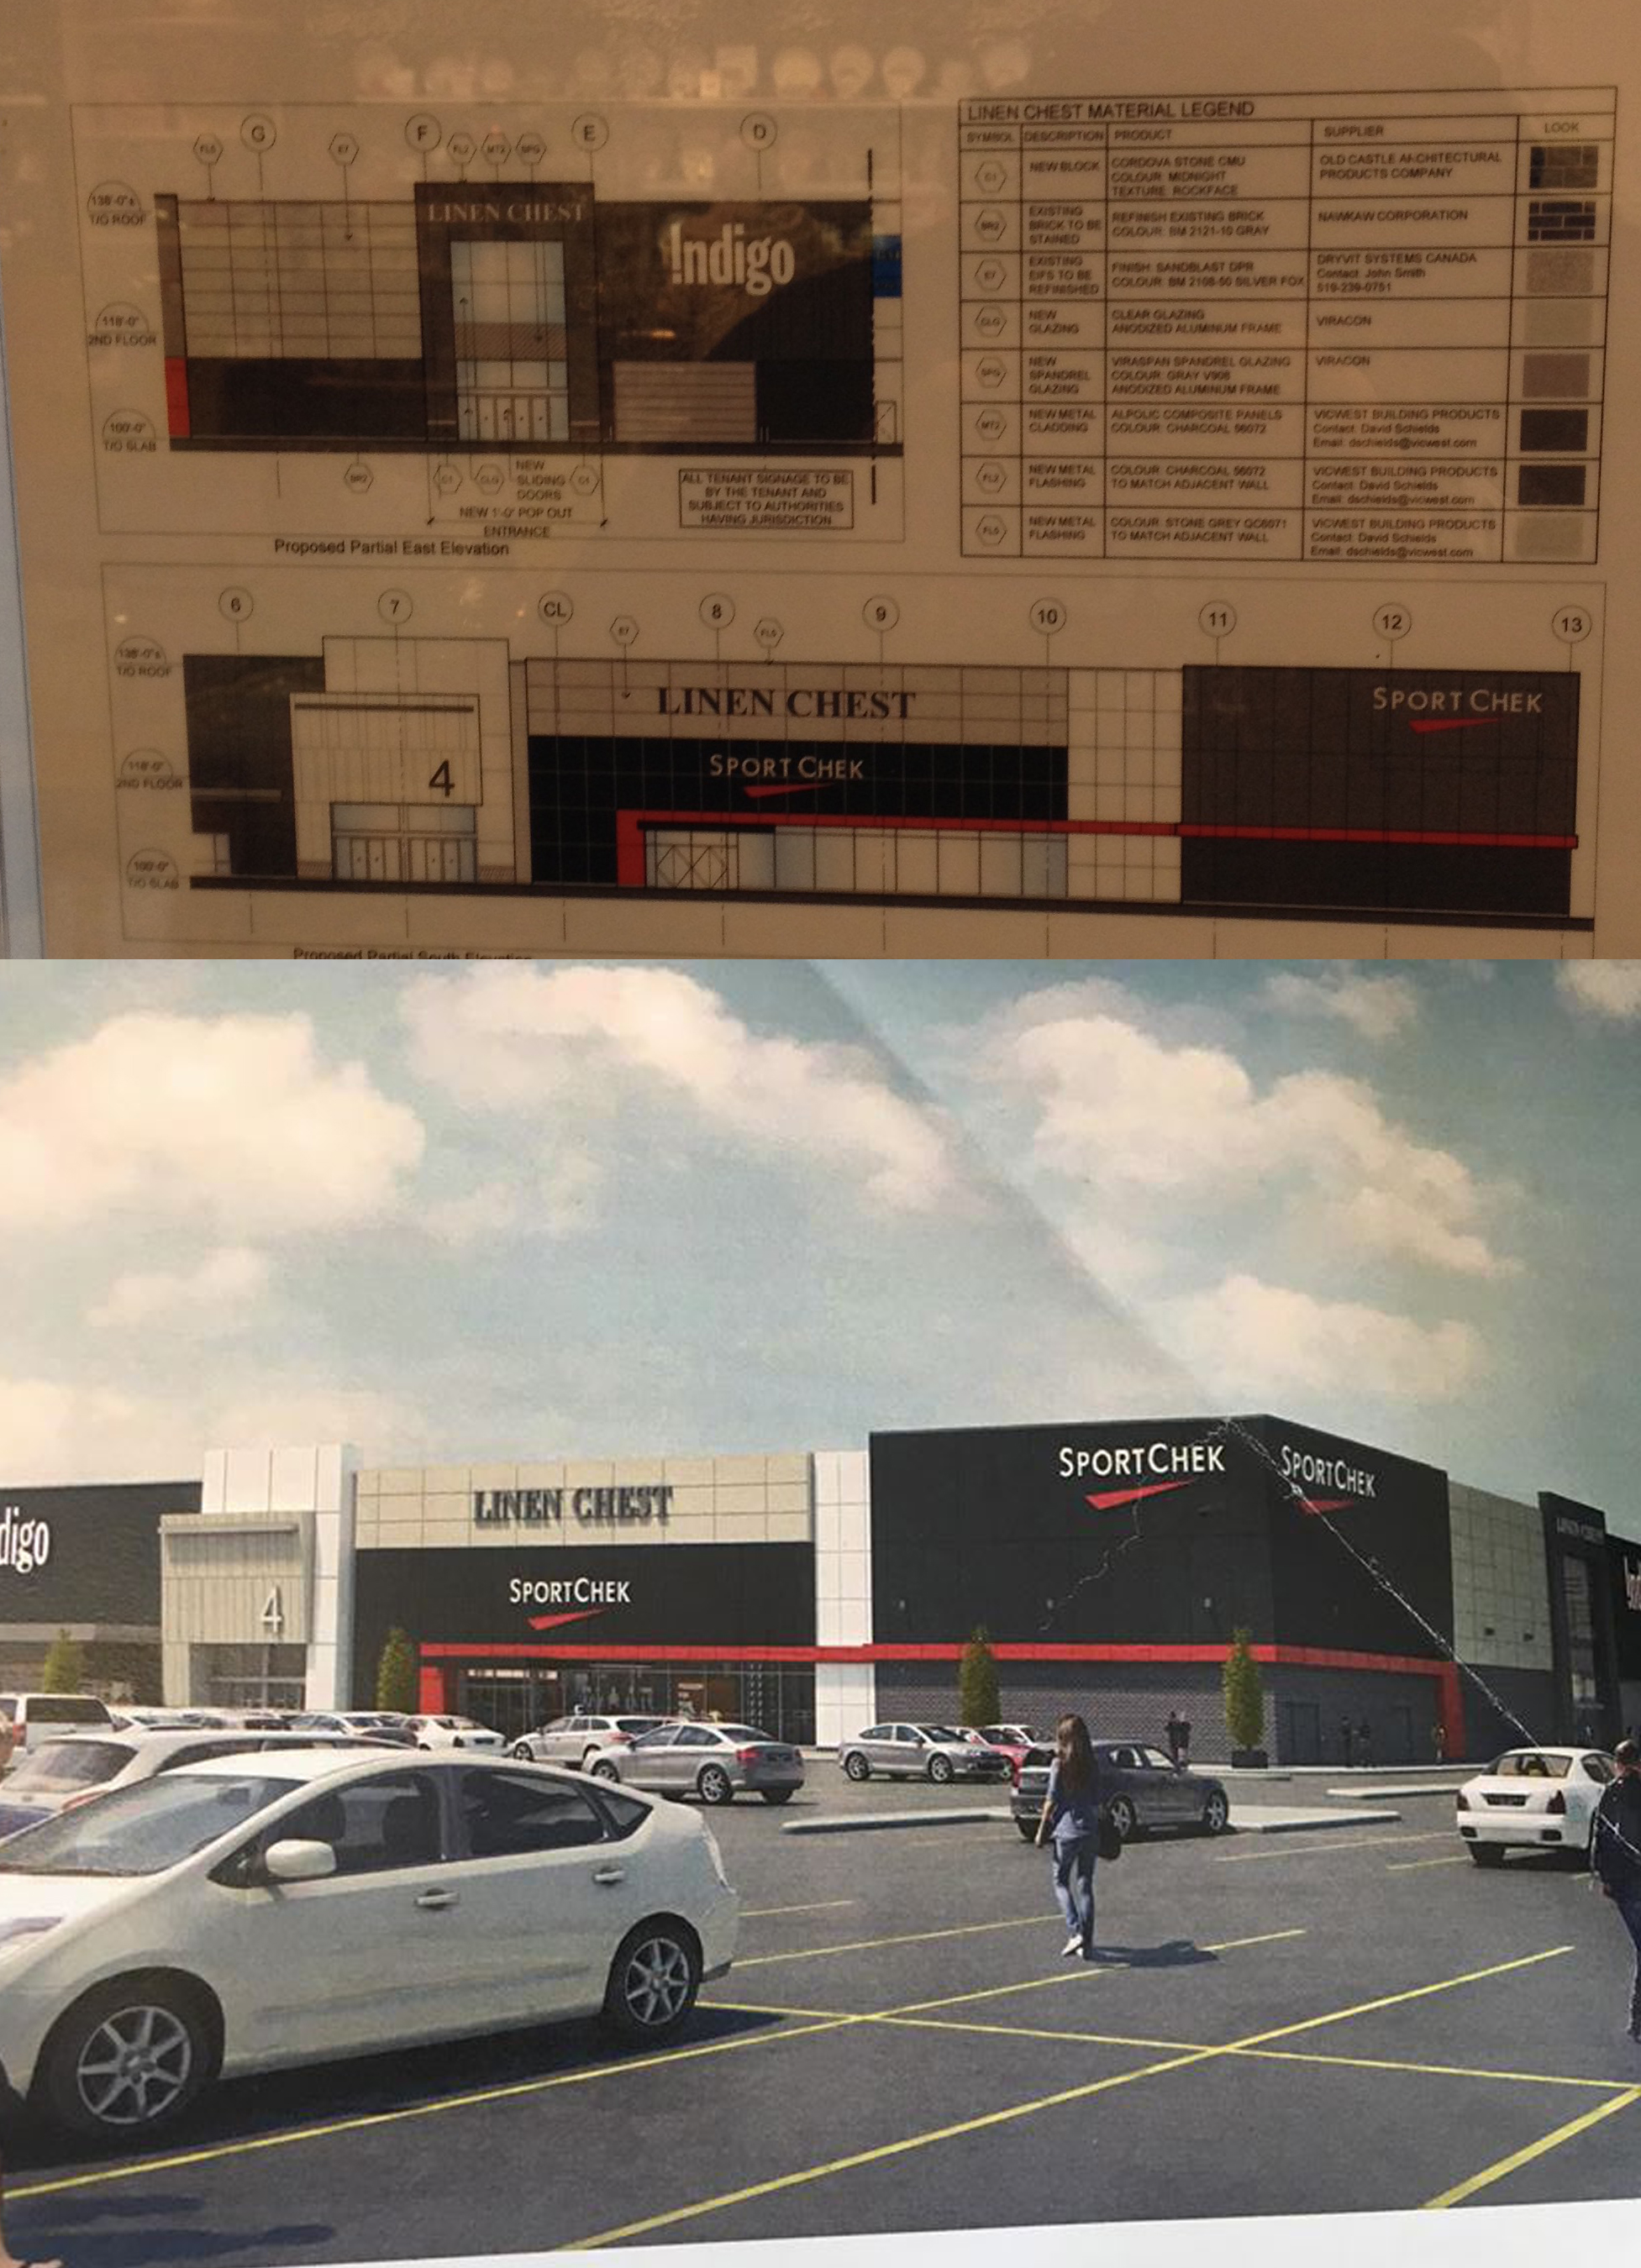 Mic Mac Mall Map Ivanhoé Cambridge Announces Significant Renovation of Mic Mac Mall